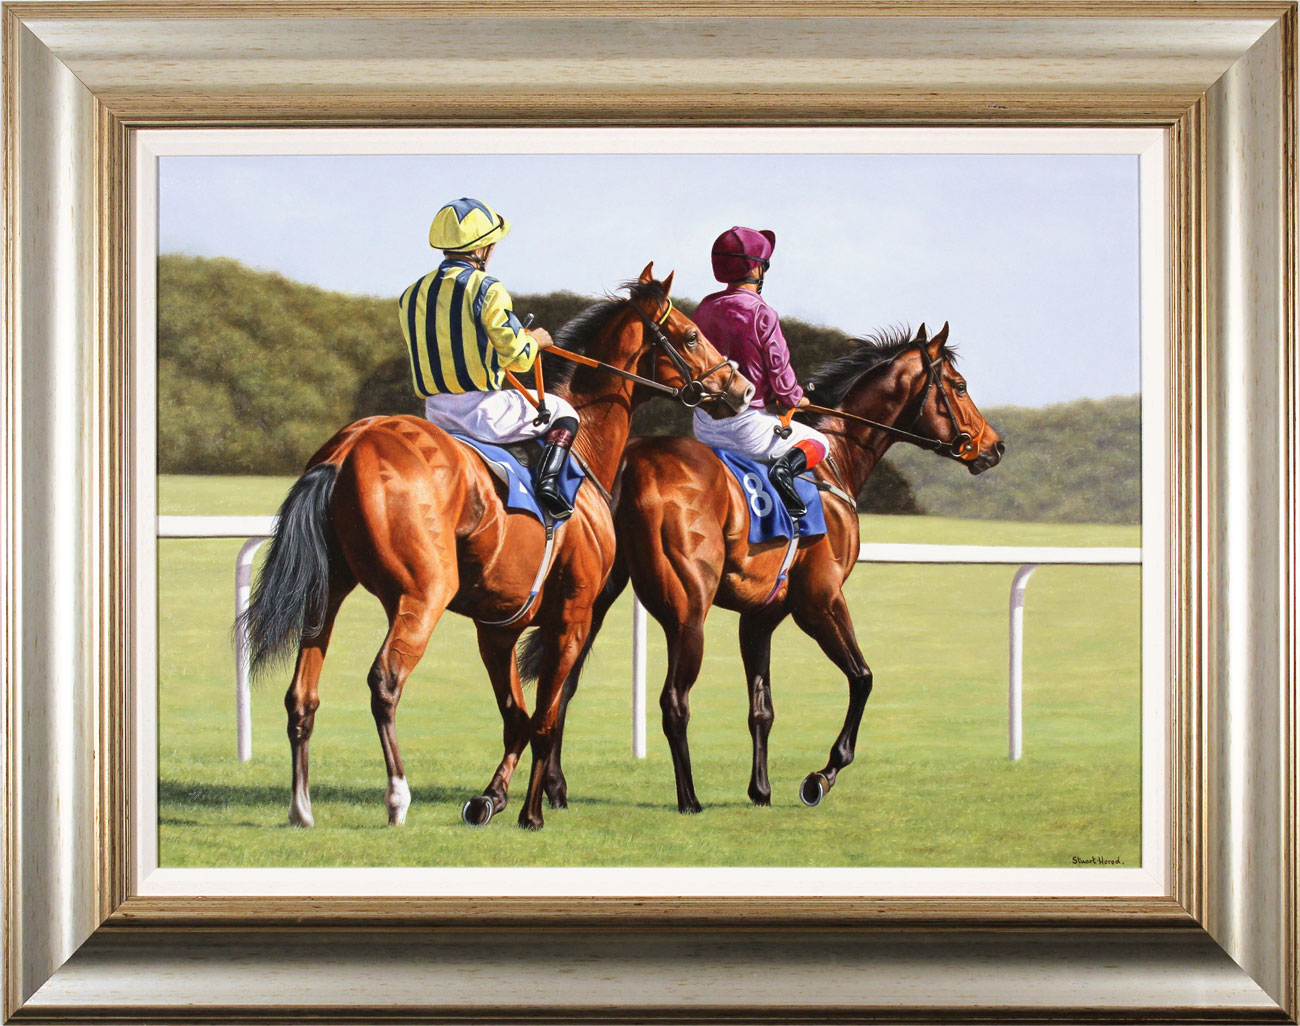 Stuart Herod, Original oil painting on canvas, Off to the Starting Gate. Click to enlarge